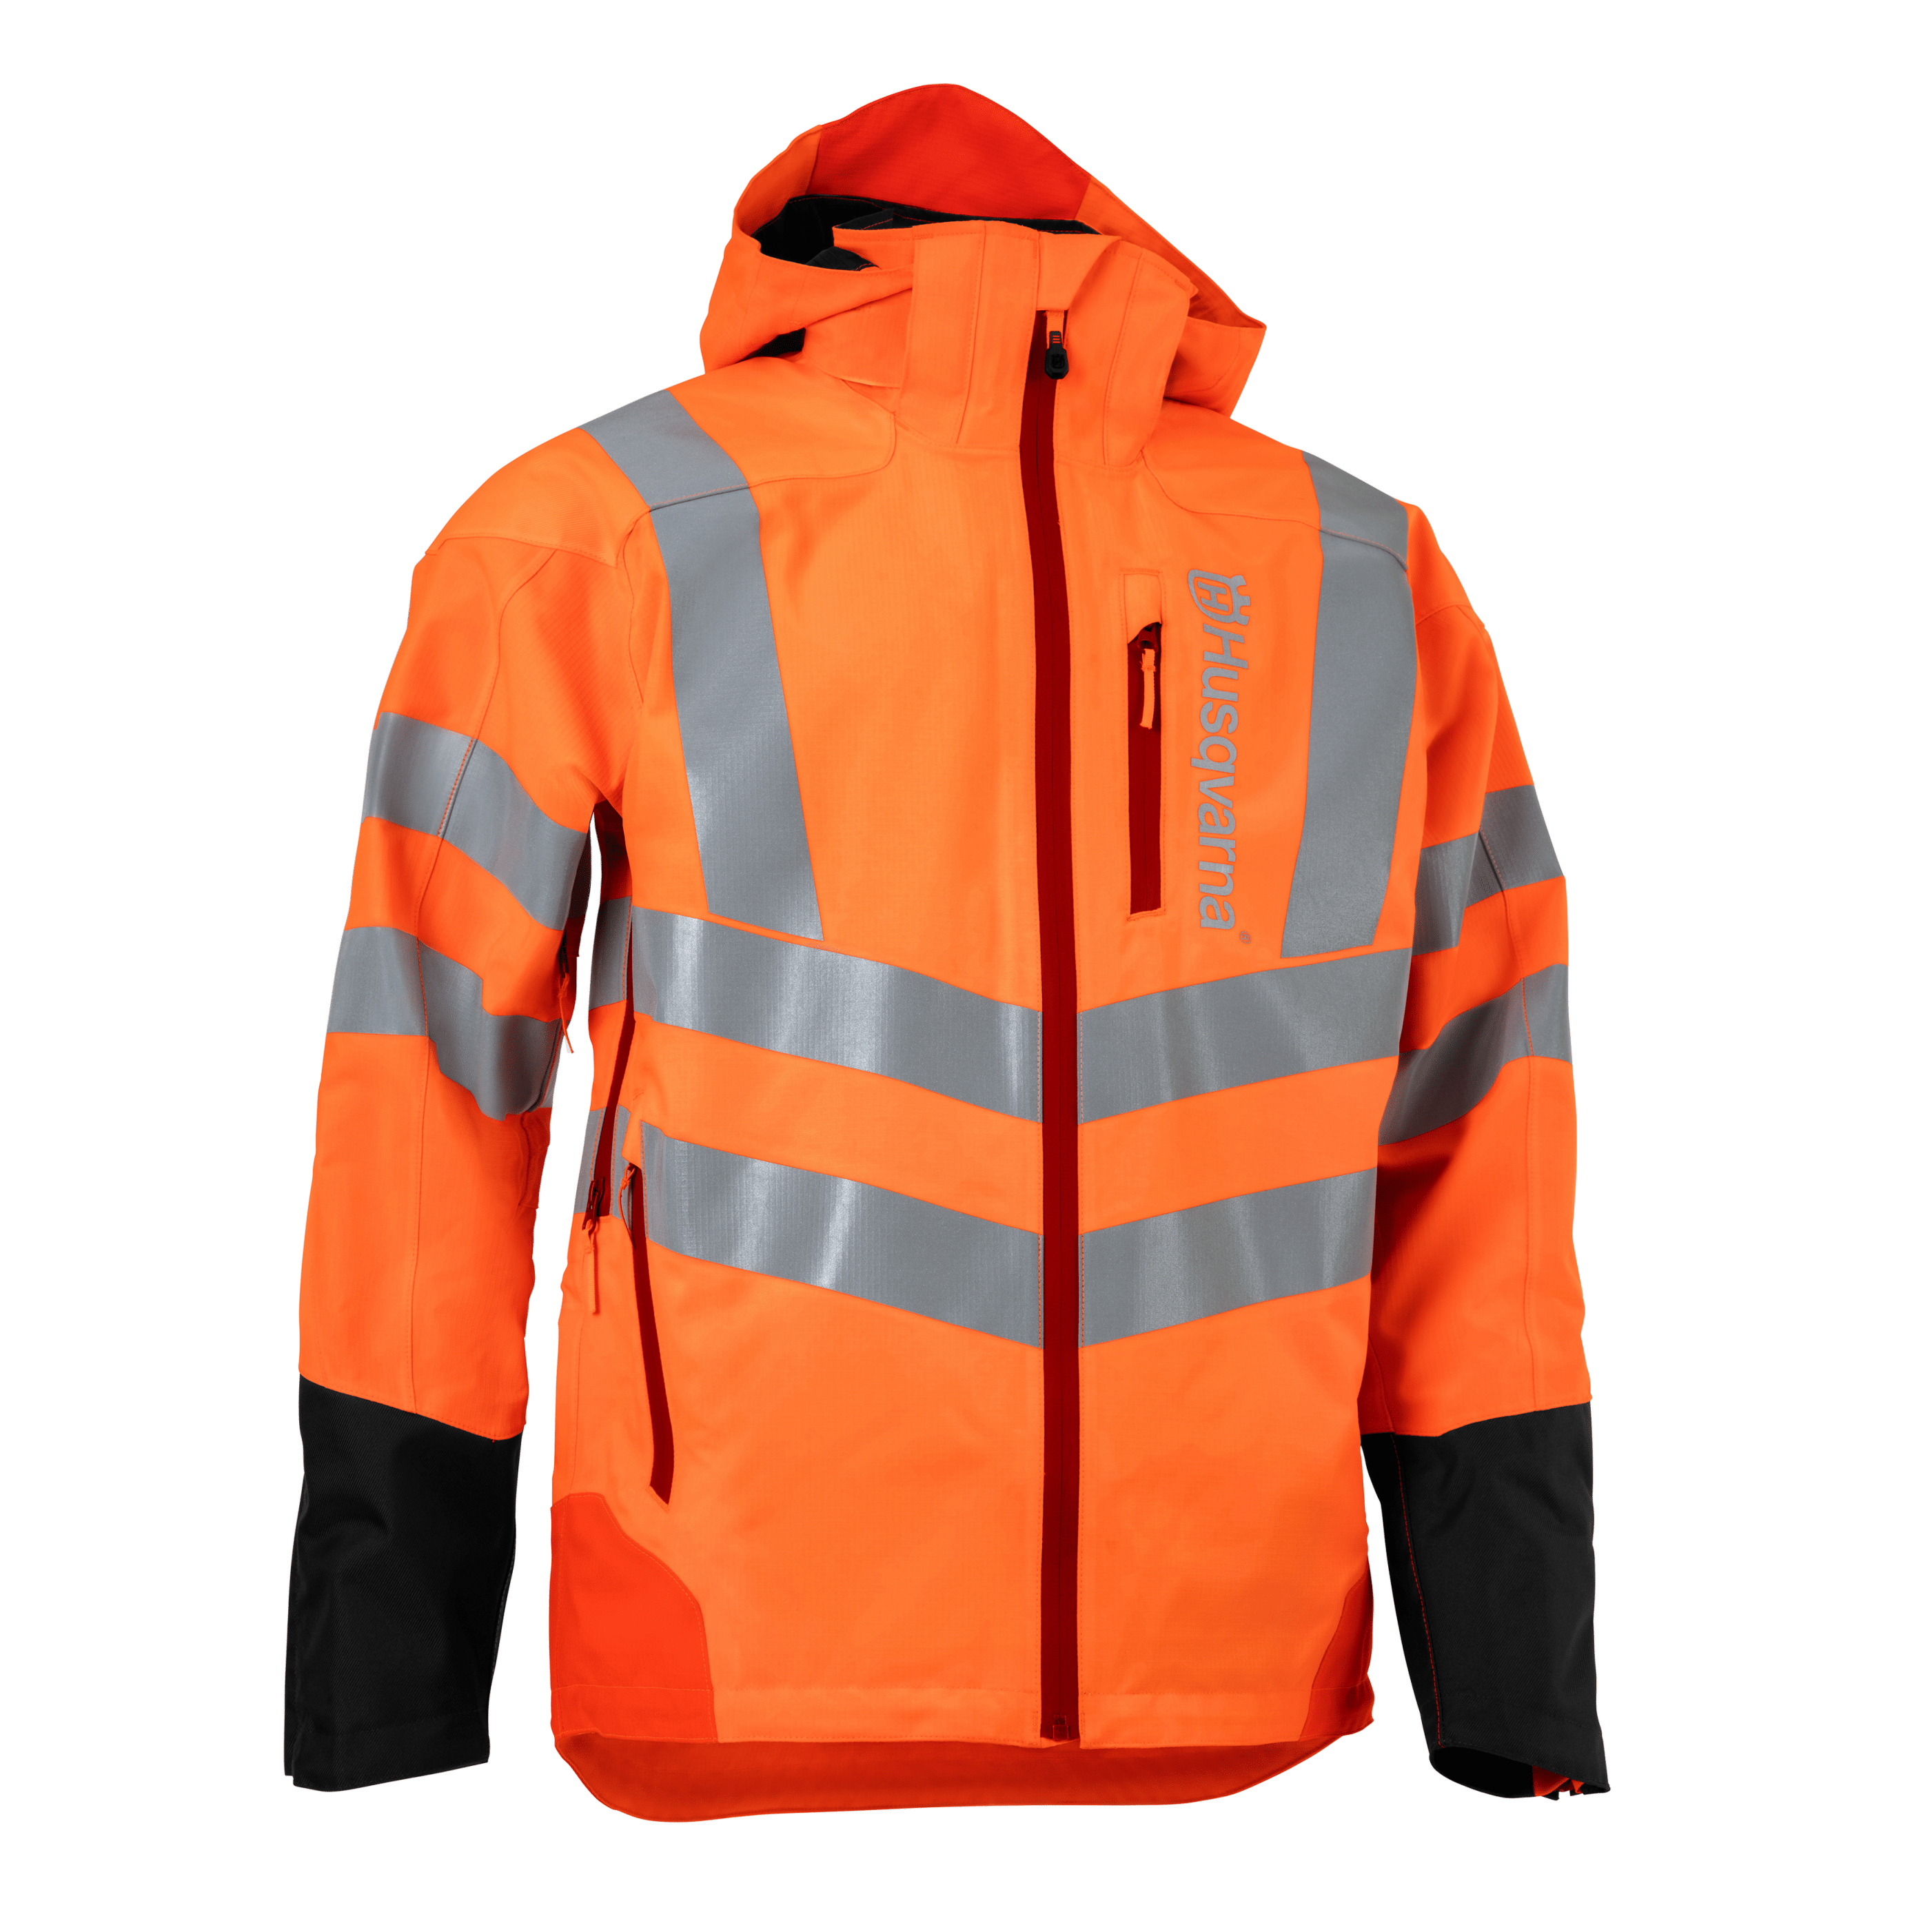 HUSQVARNA Rain Jacket Vent High-Viz, Technical - V-Pro Power Equipment